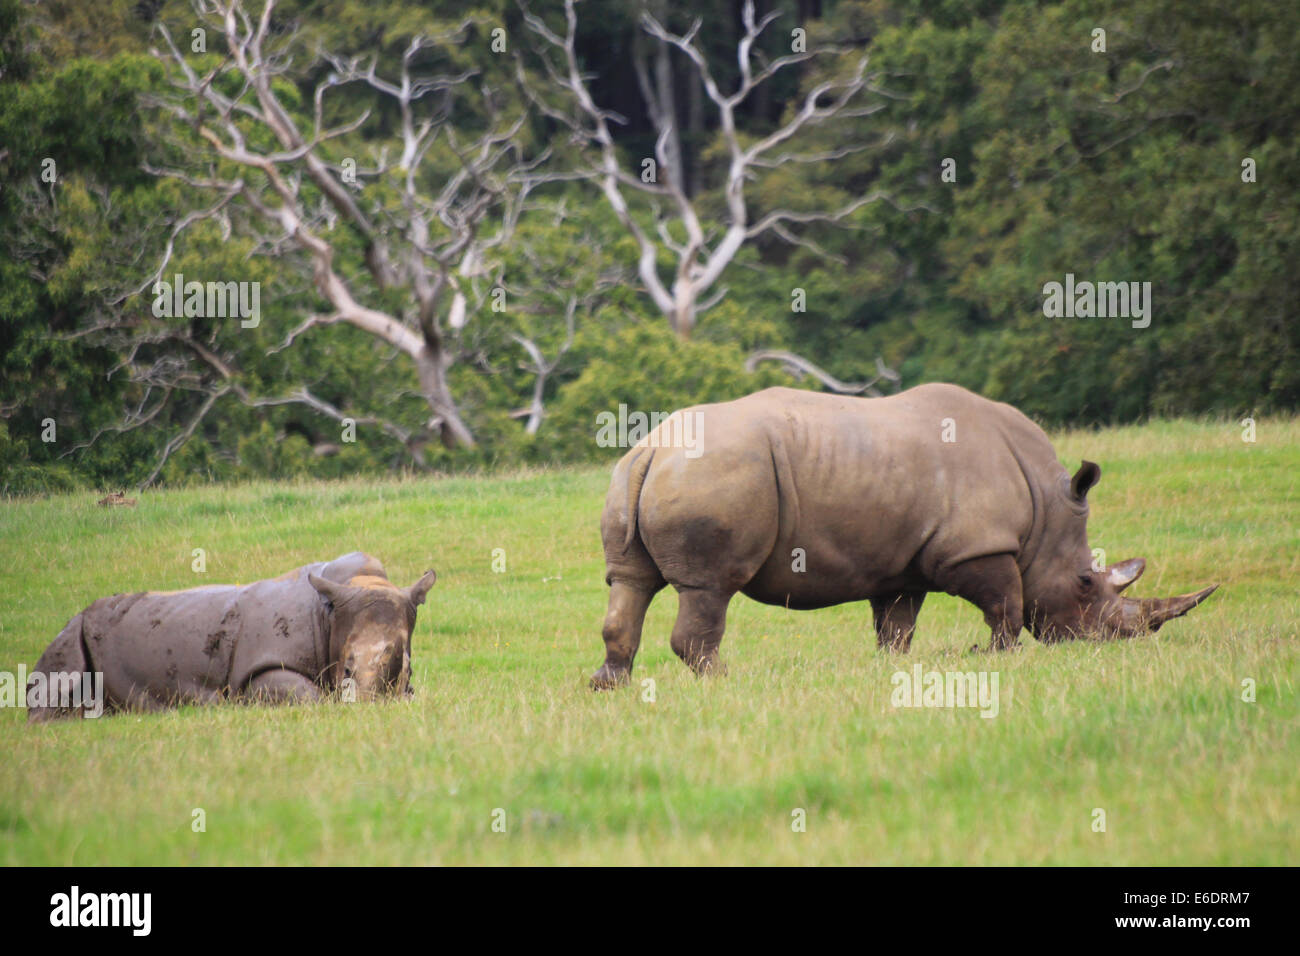 A mature and juvenile Southern White Rhinoceros on a field of grass. - Stock Image